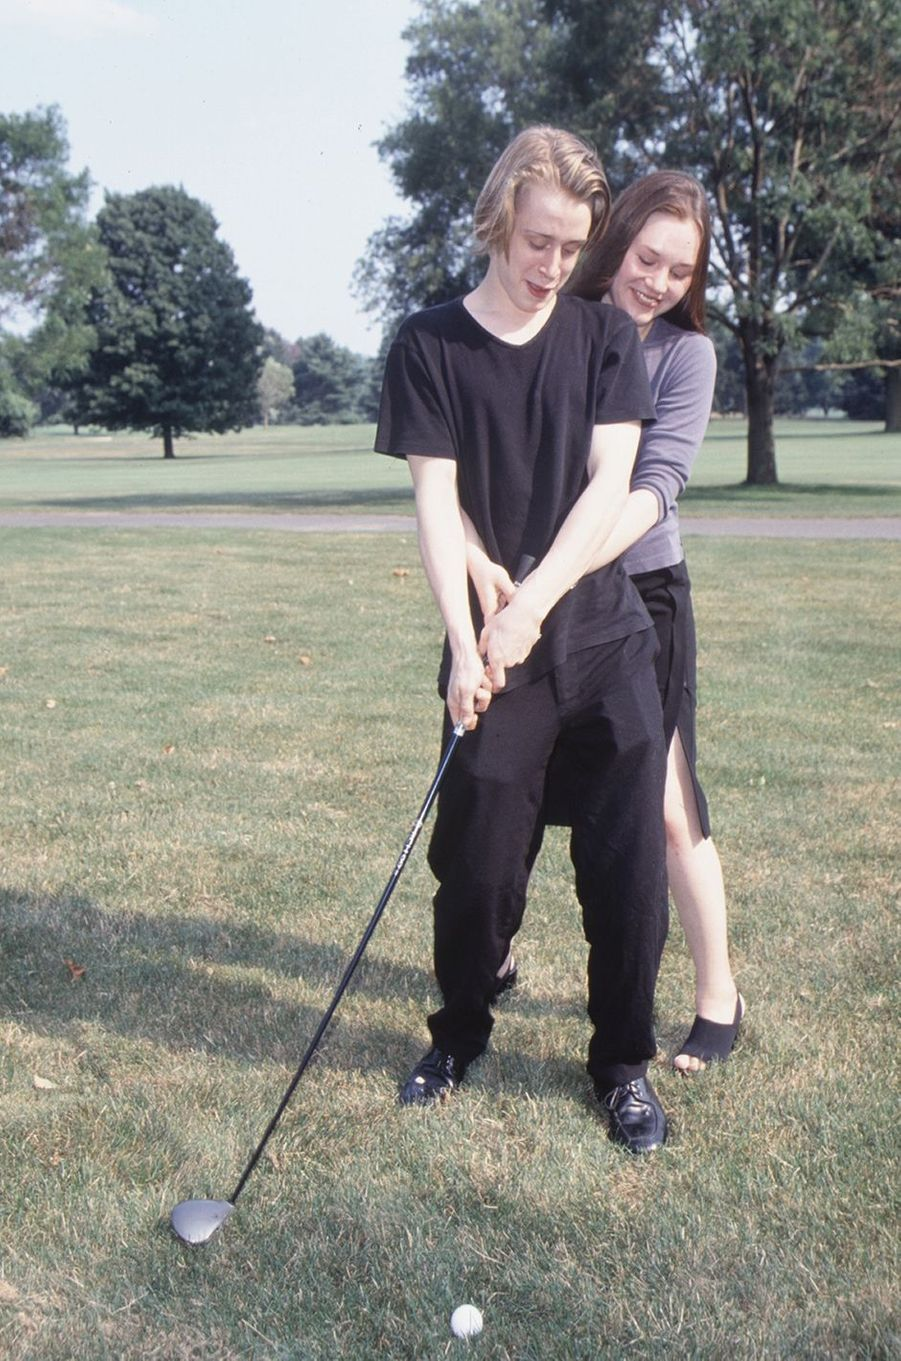 Macaulay Culkin et Rachel Miner lors d'un shooting photo en 1999